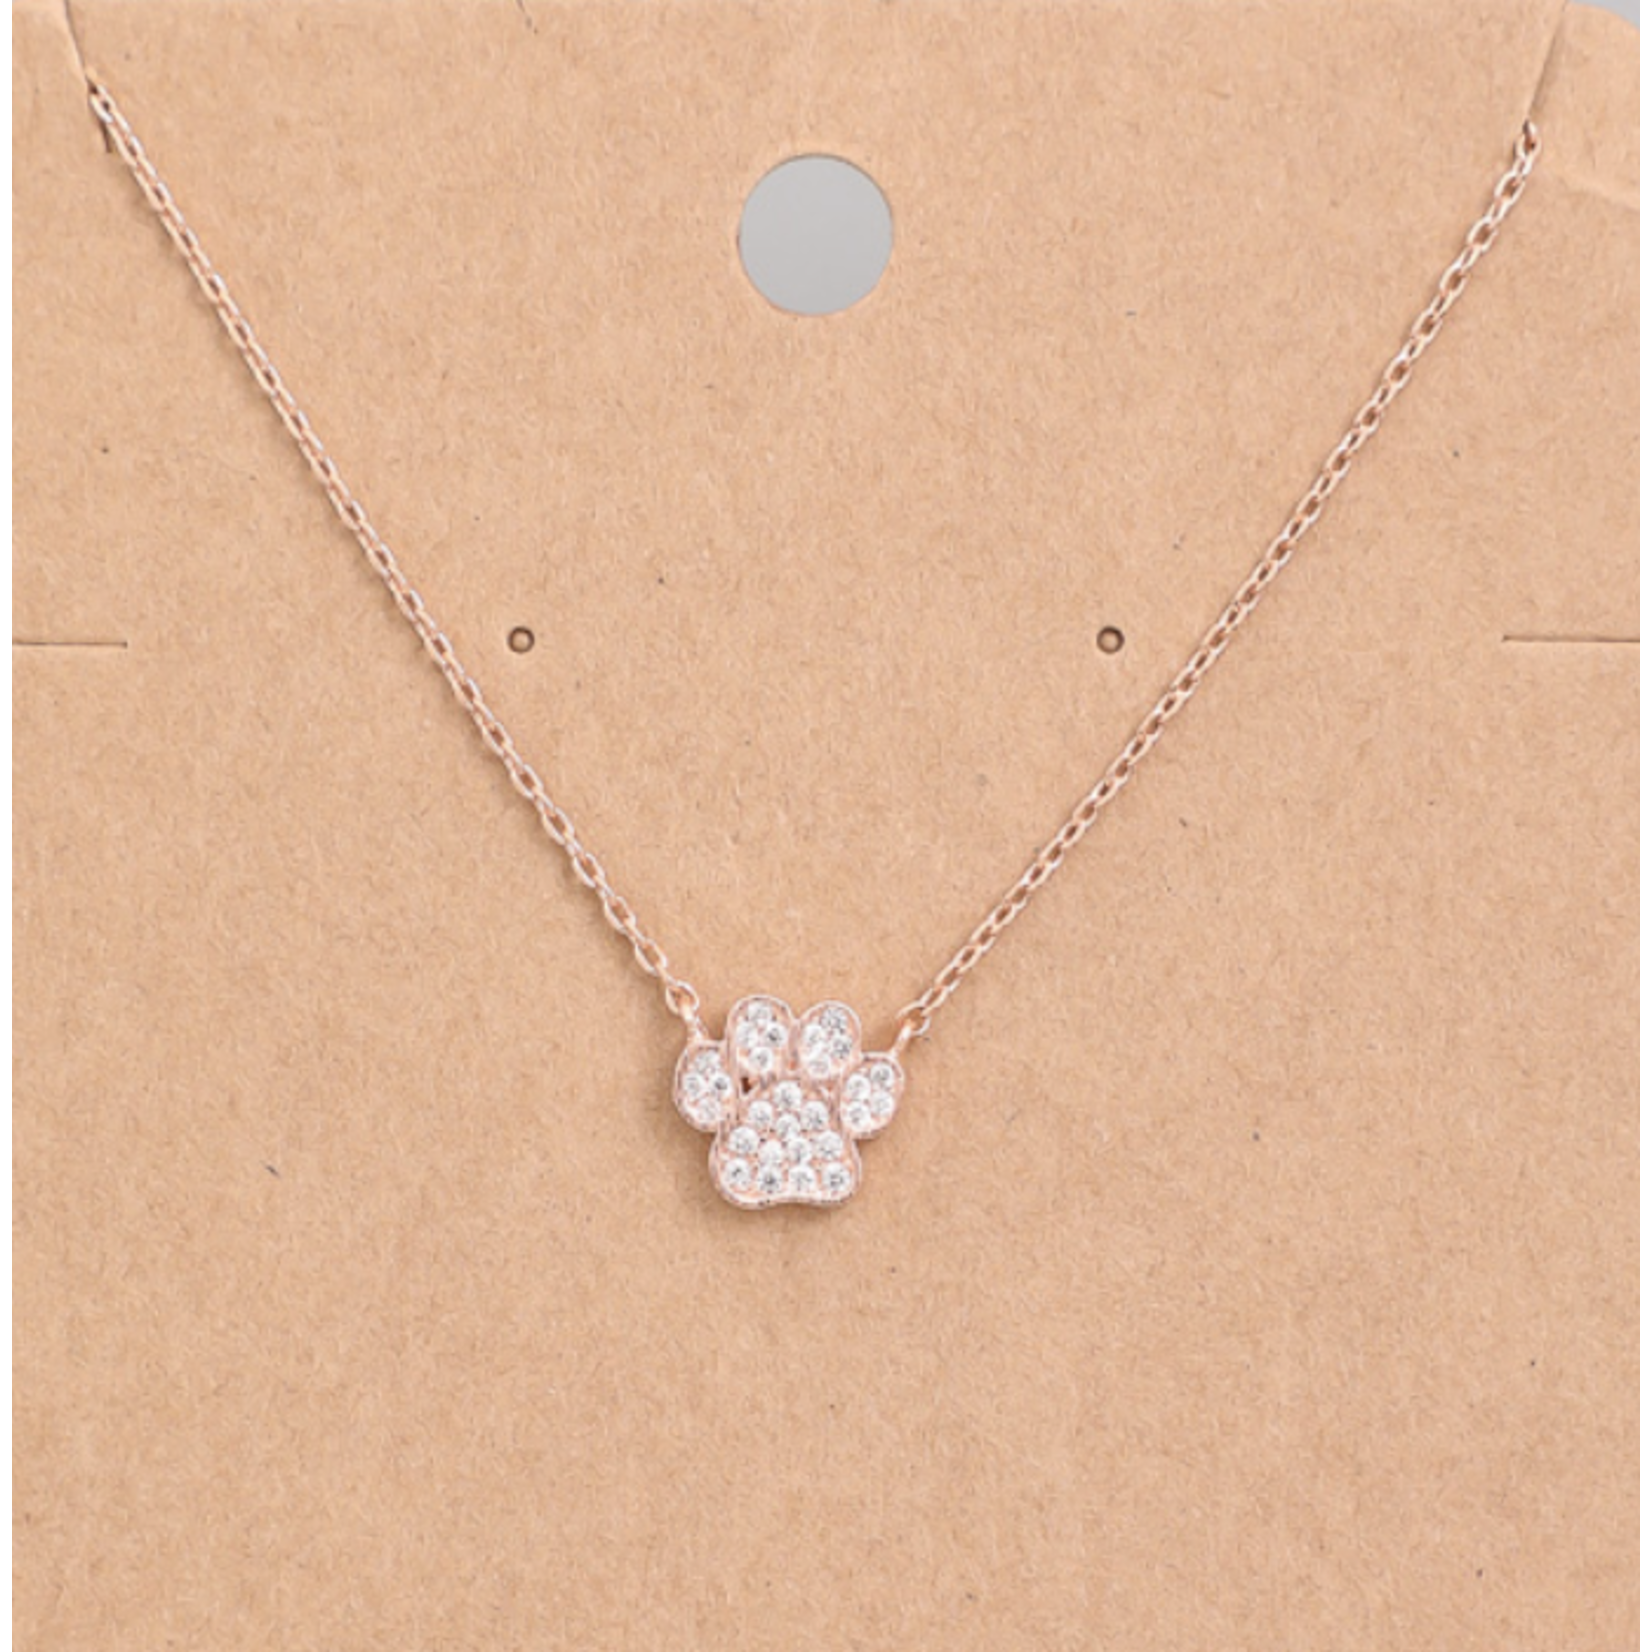 Necklace - Paw Print - Rose Gold Tone